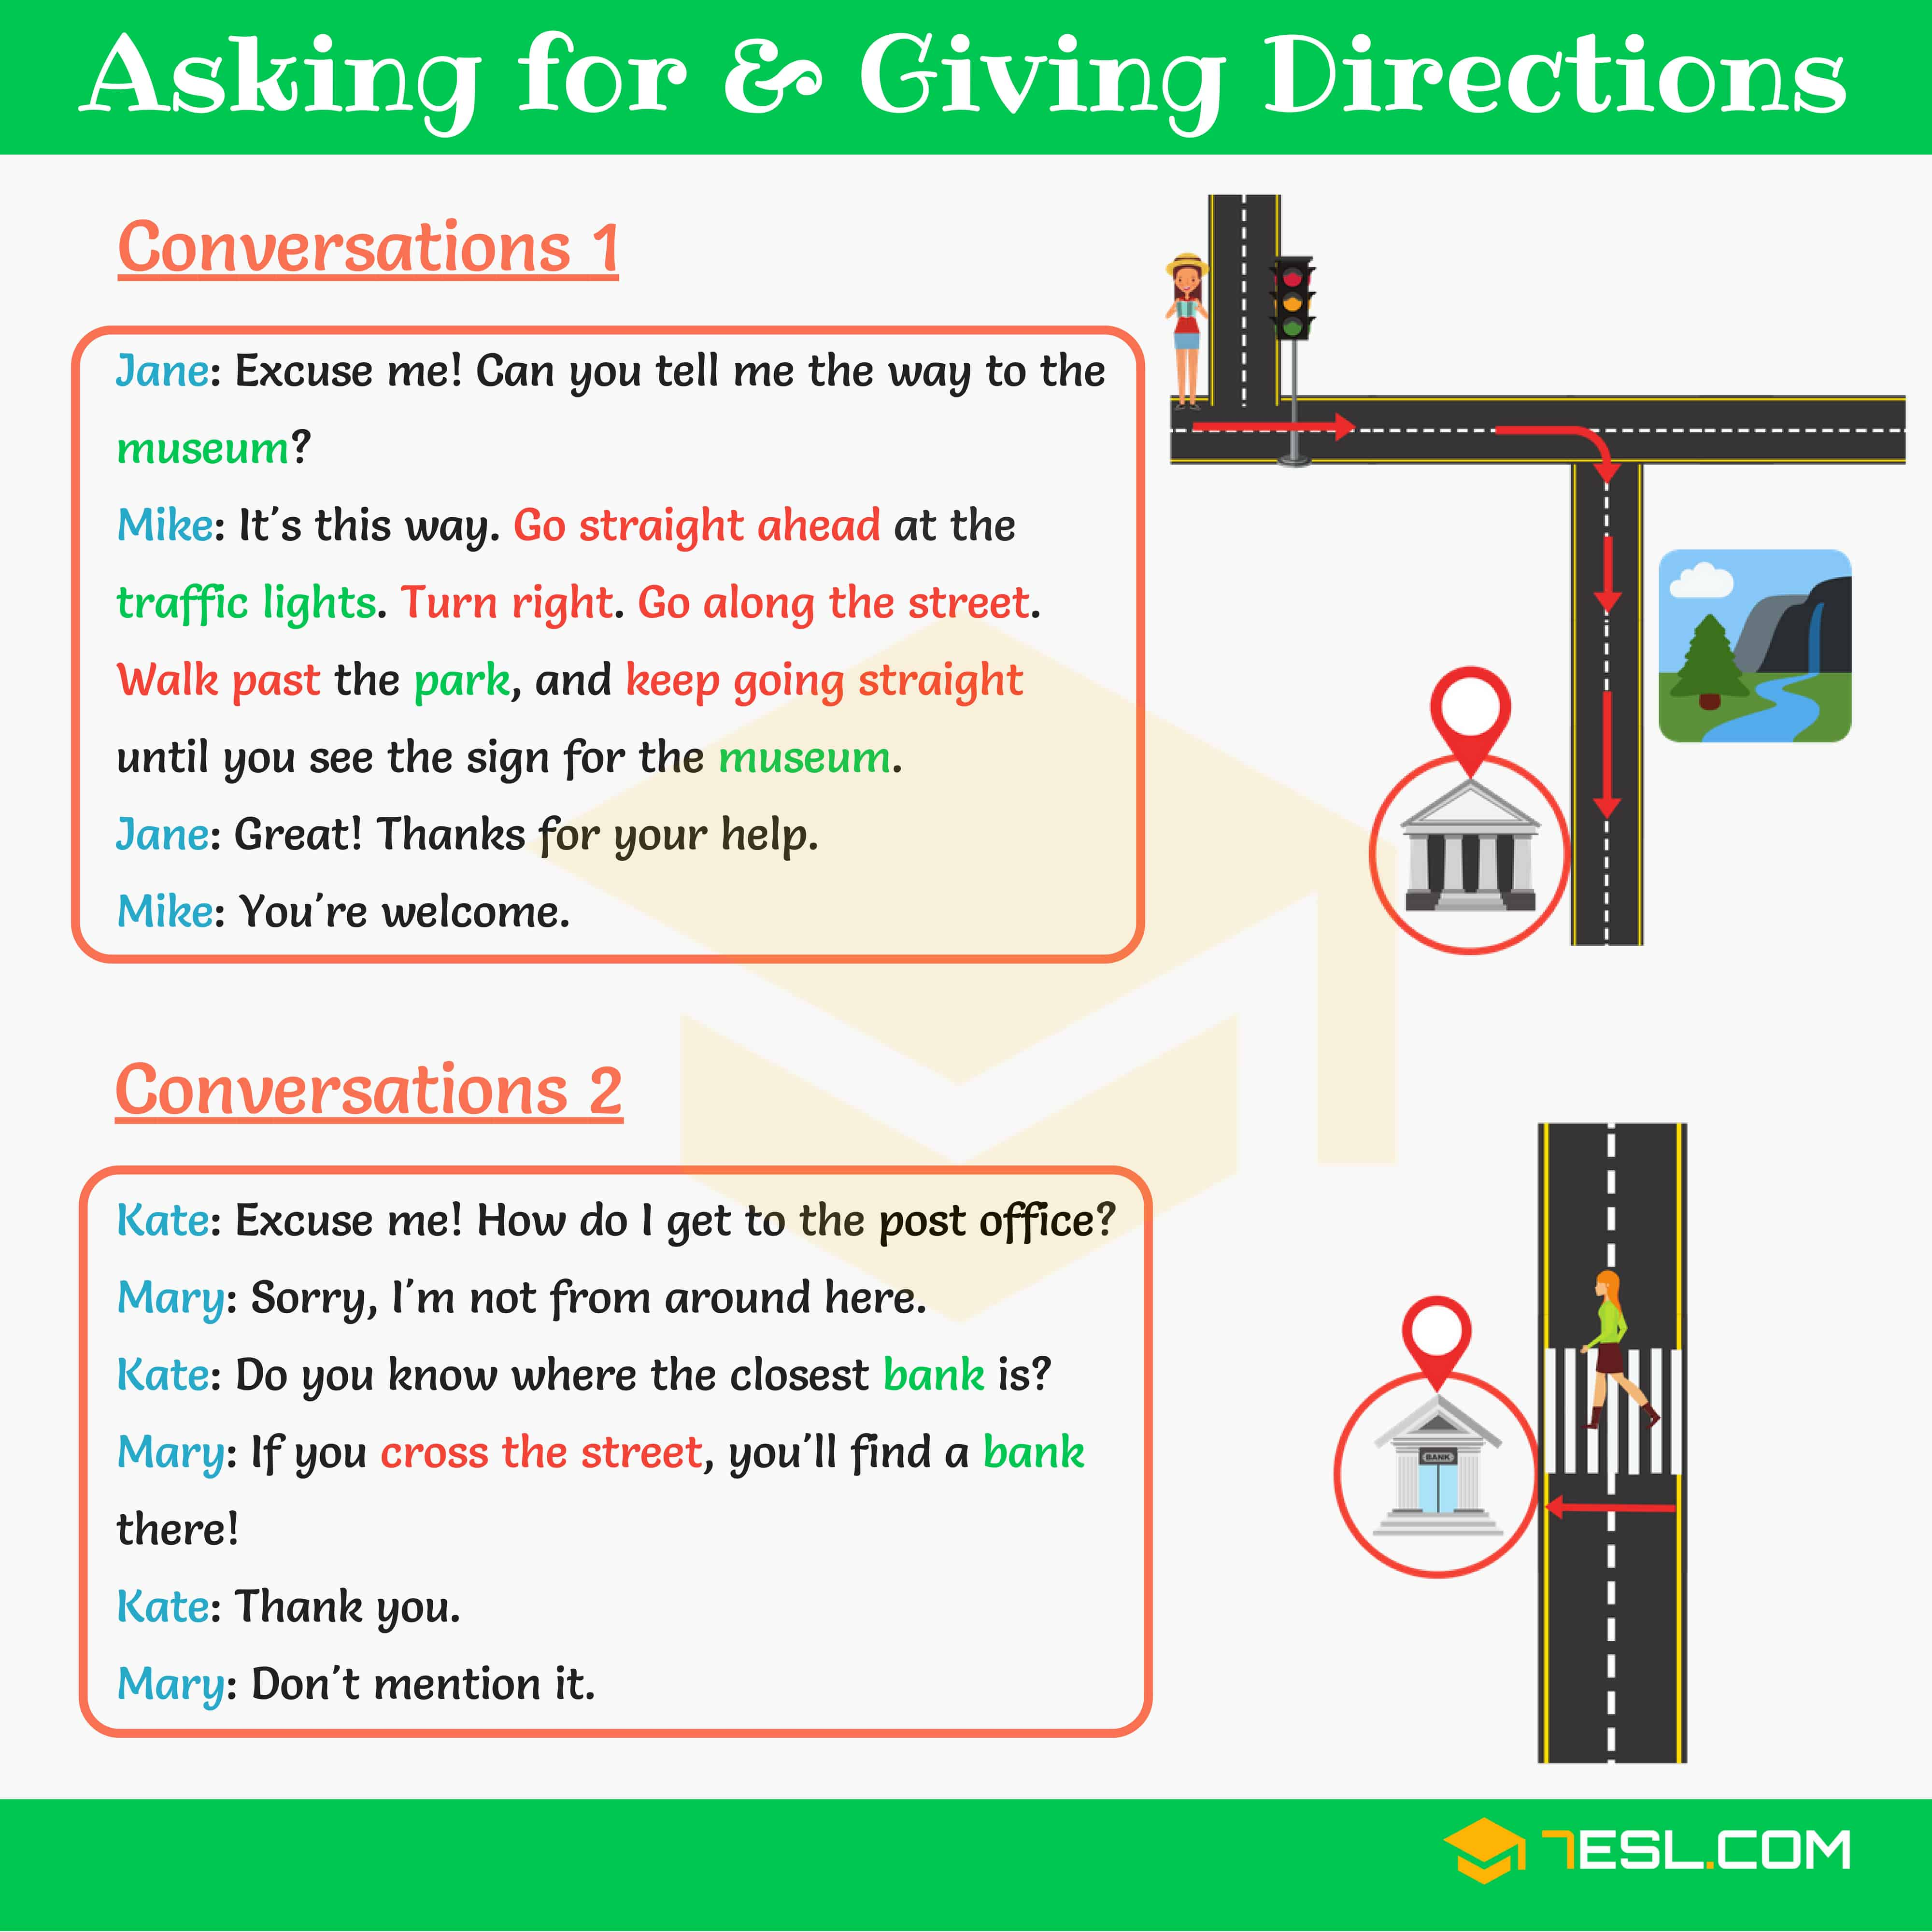 Asking for and Giving Directions | English Conversations